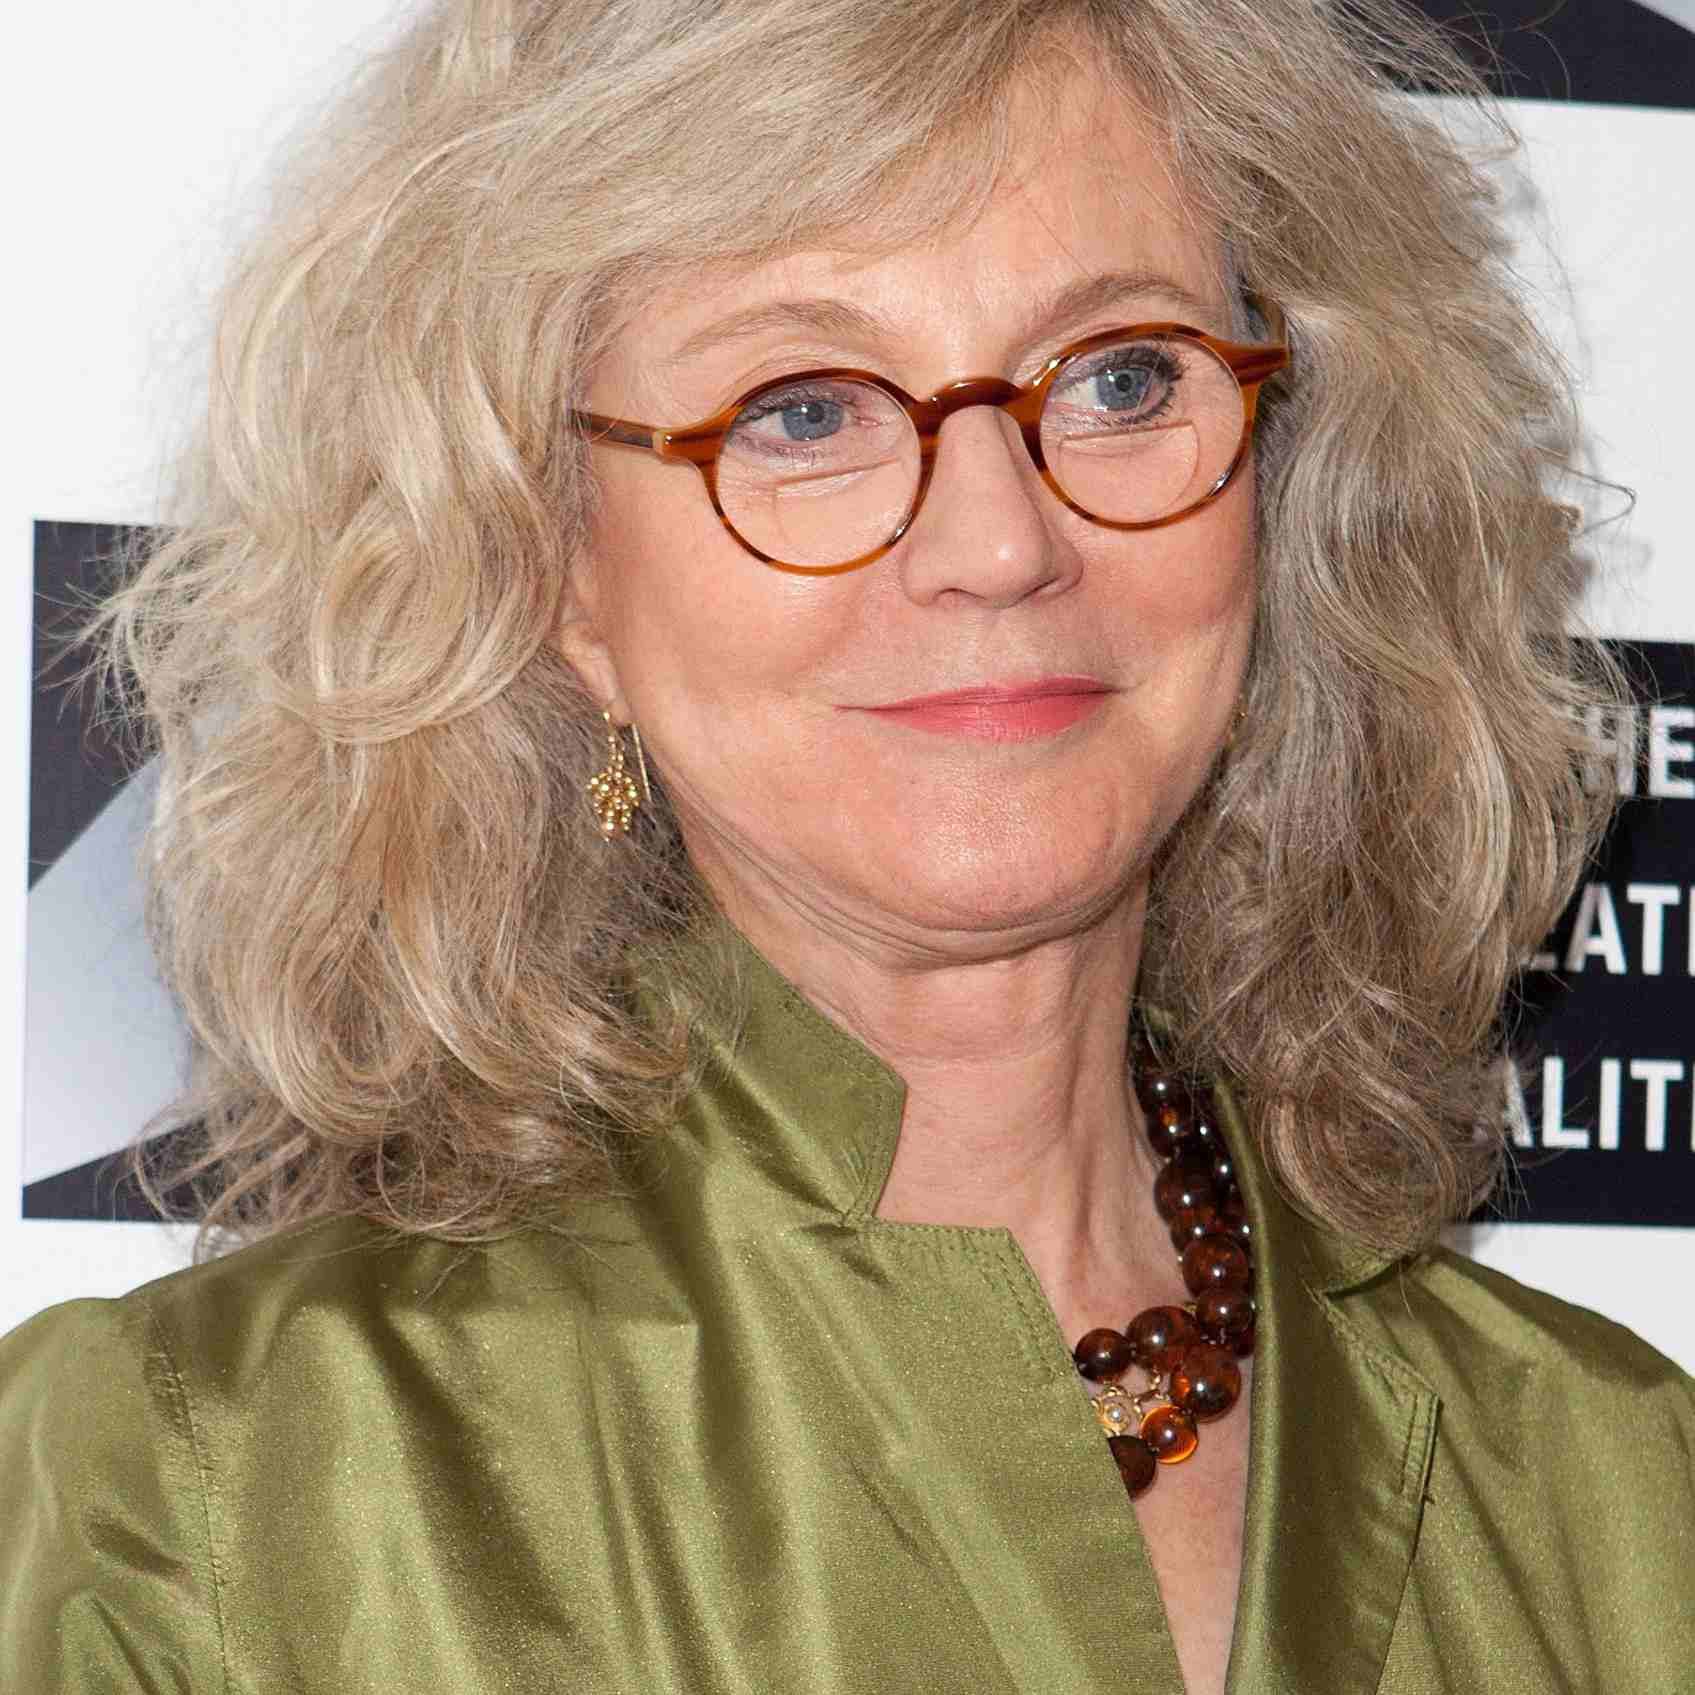 Medium Hairstyles For 50 Year Old Woman With Glasses